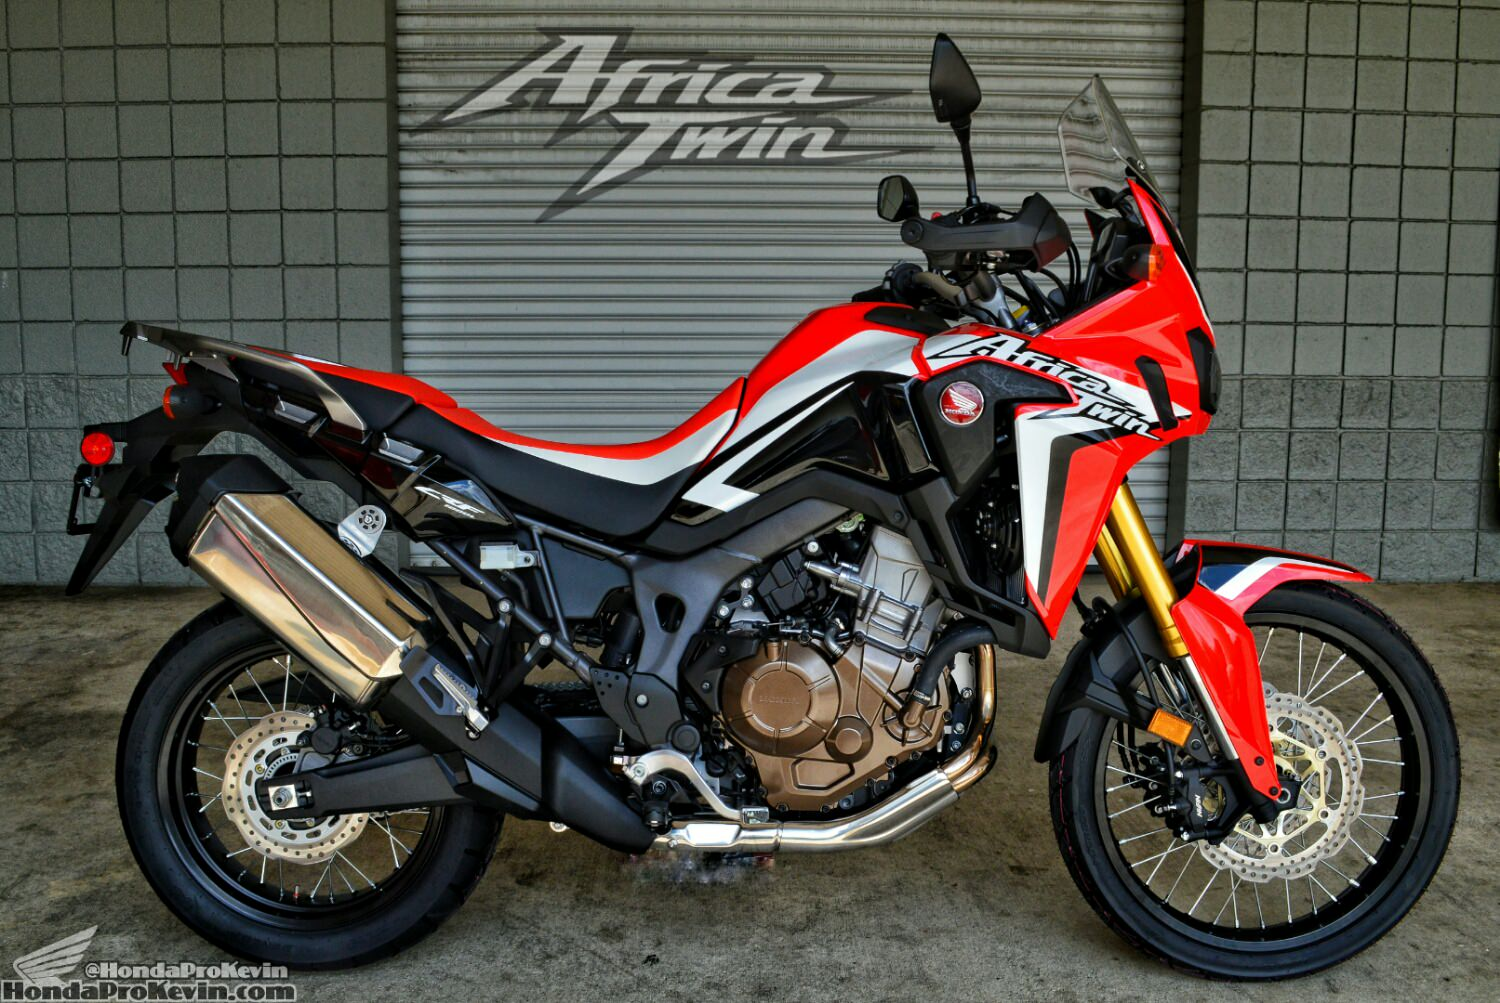 2016 Honda Africa Twin CRF1000L Adventure Motorcycle / Bike - Specs, Horsepower & Torque, Release Dates, Prices, Accessories